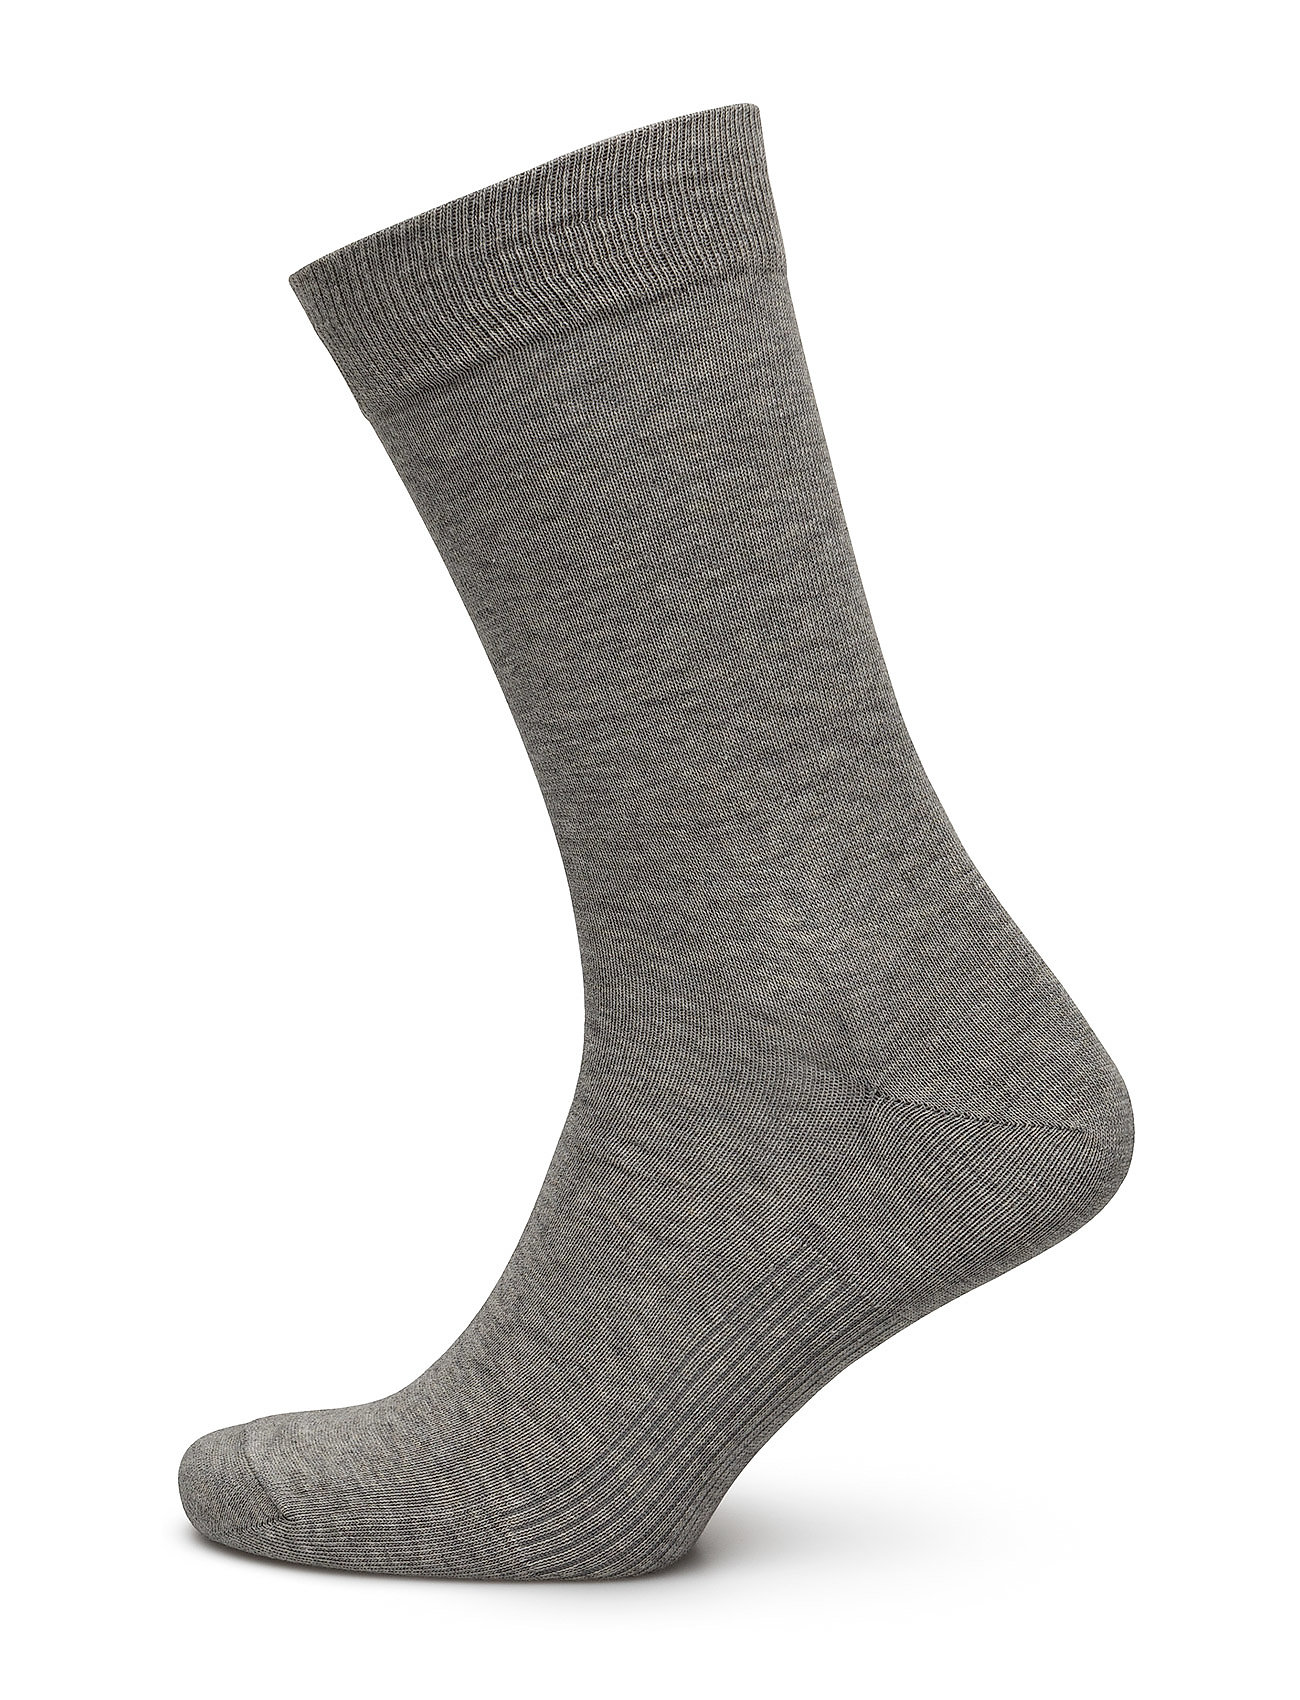 Egtved Egtved socks cotton - LIGHT GREY